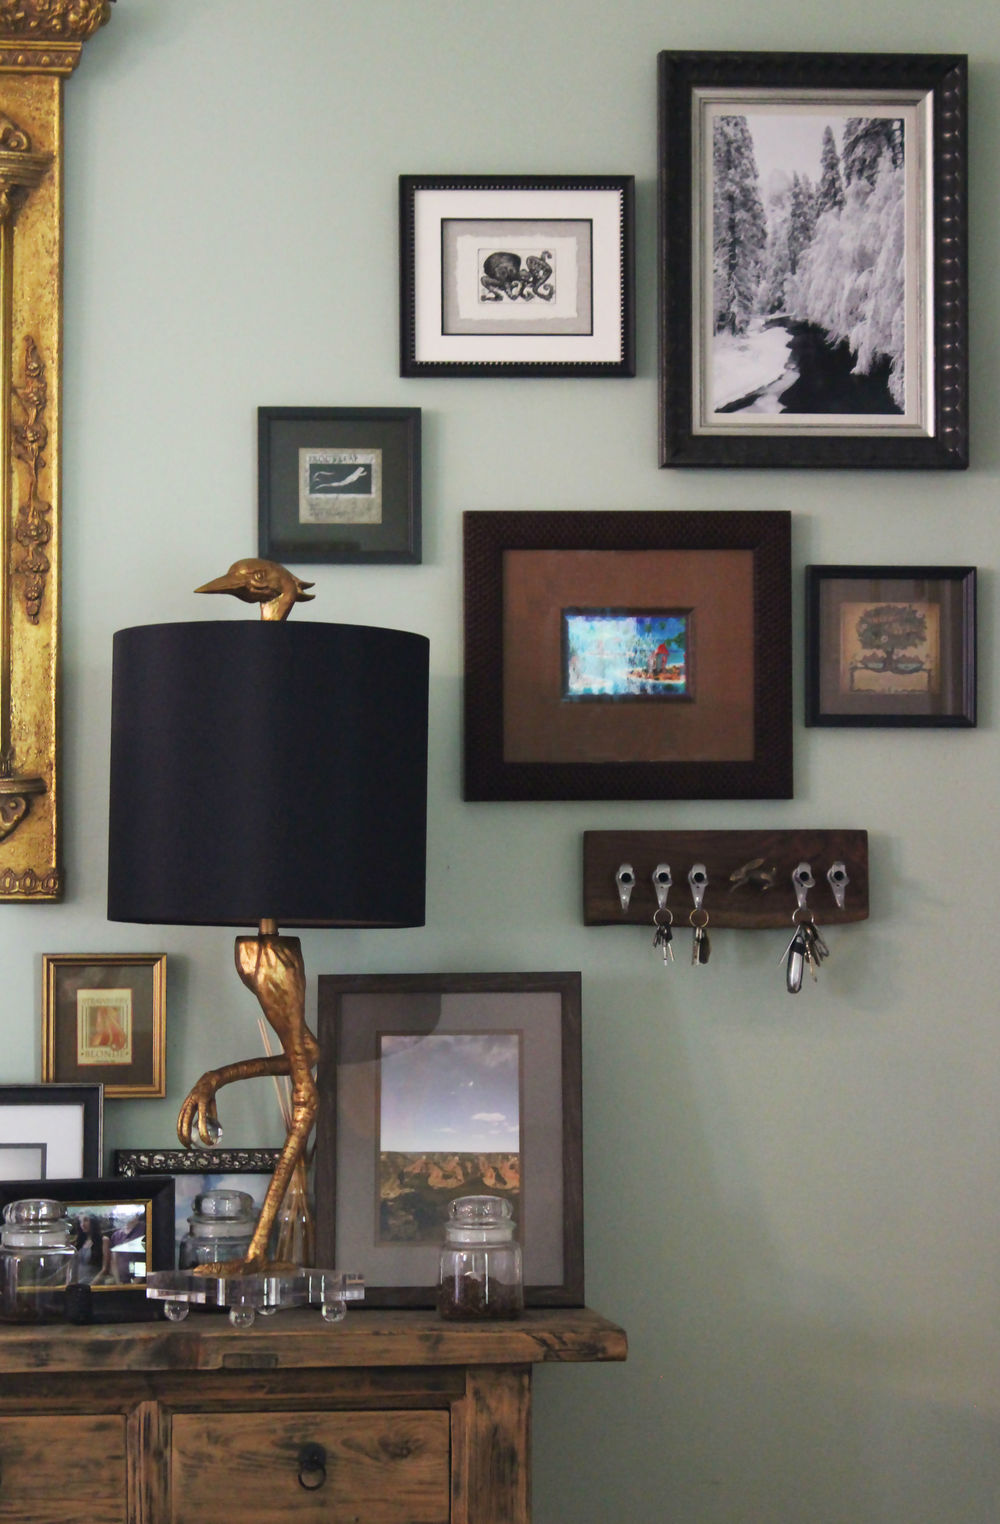 This entryway grouping incorporates an ibis bird lamp and maple spout key rack. Working around three-dimensional pieces can add visual interest to an otherwise flat viewing space.